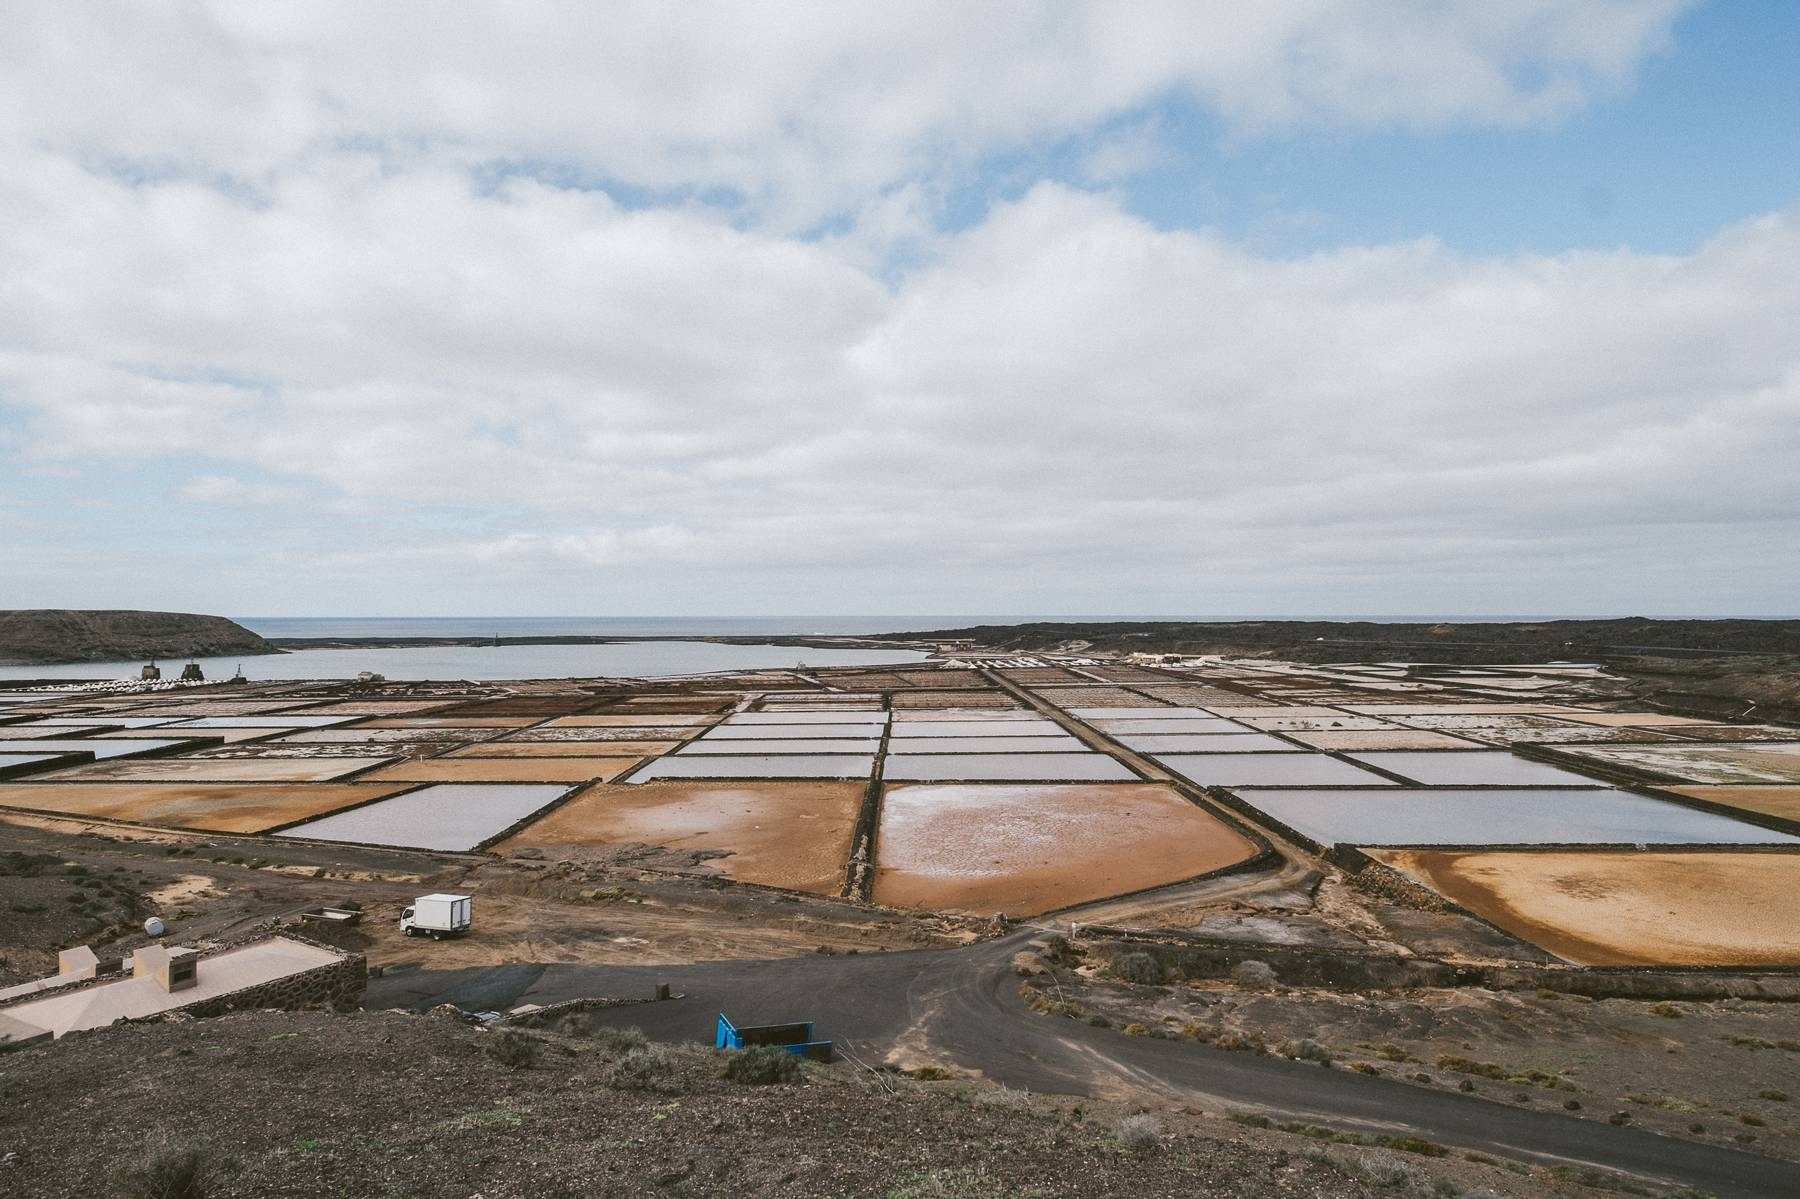 Salt fields on Canary Islands